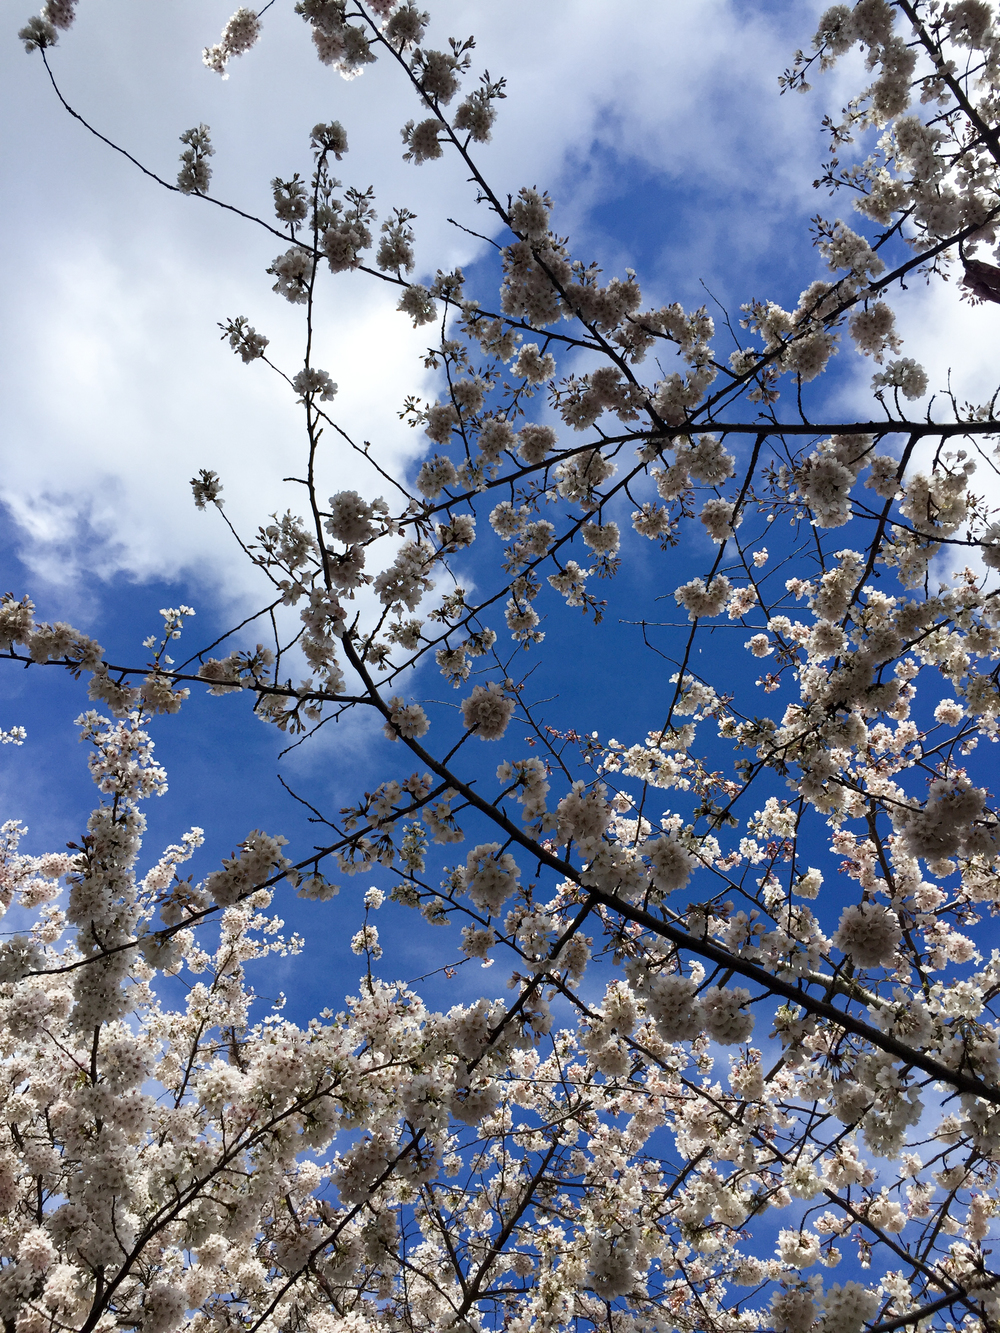 Since Yesterday - UW Cherry Blossoms